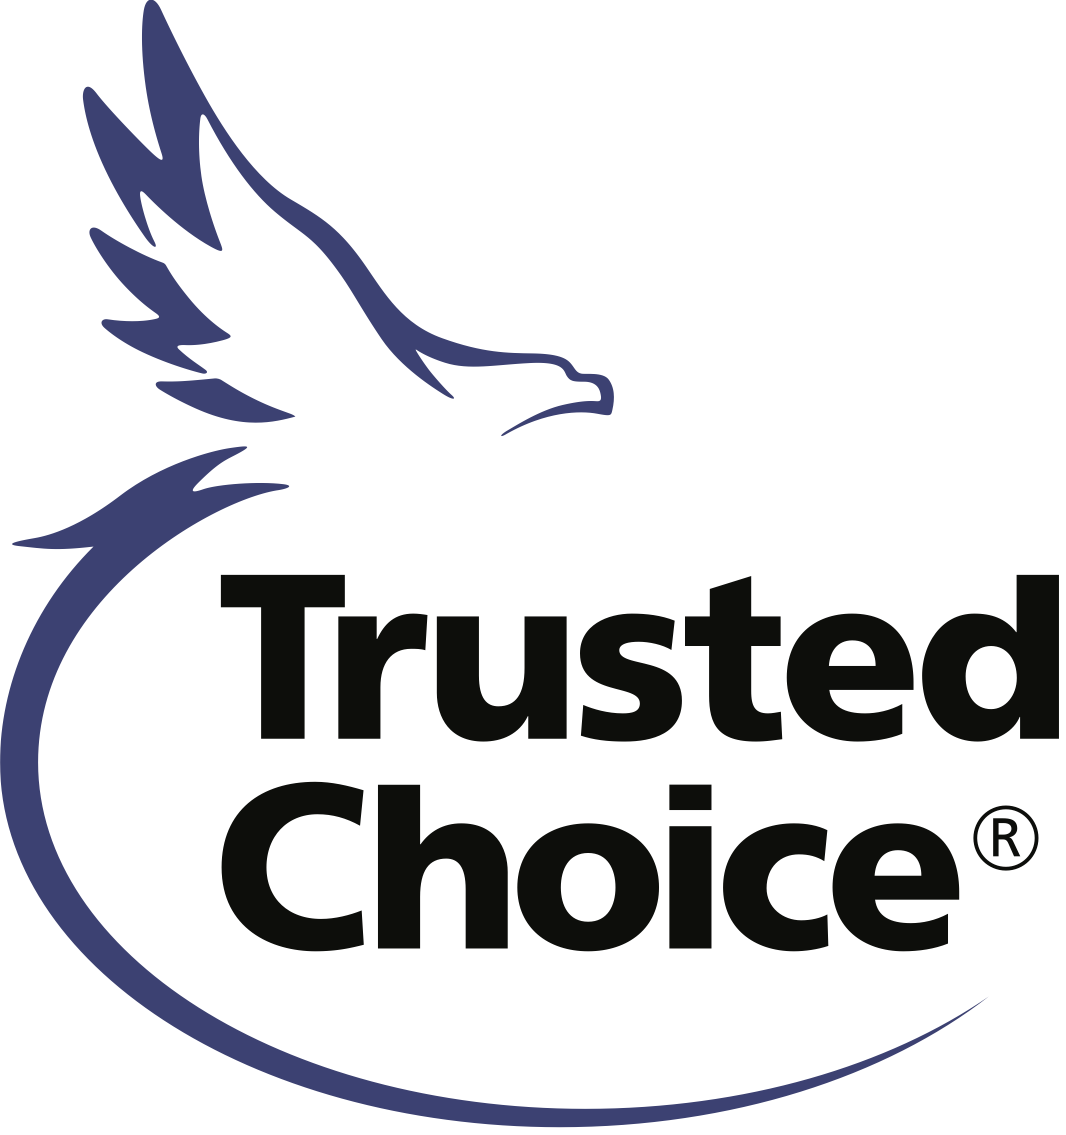 Cohen-Putnam is a Trusted Choice Agency